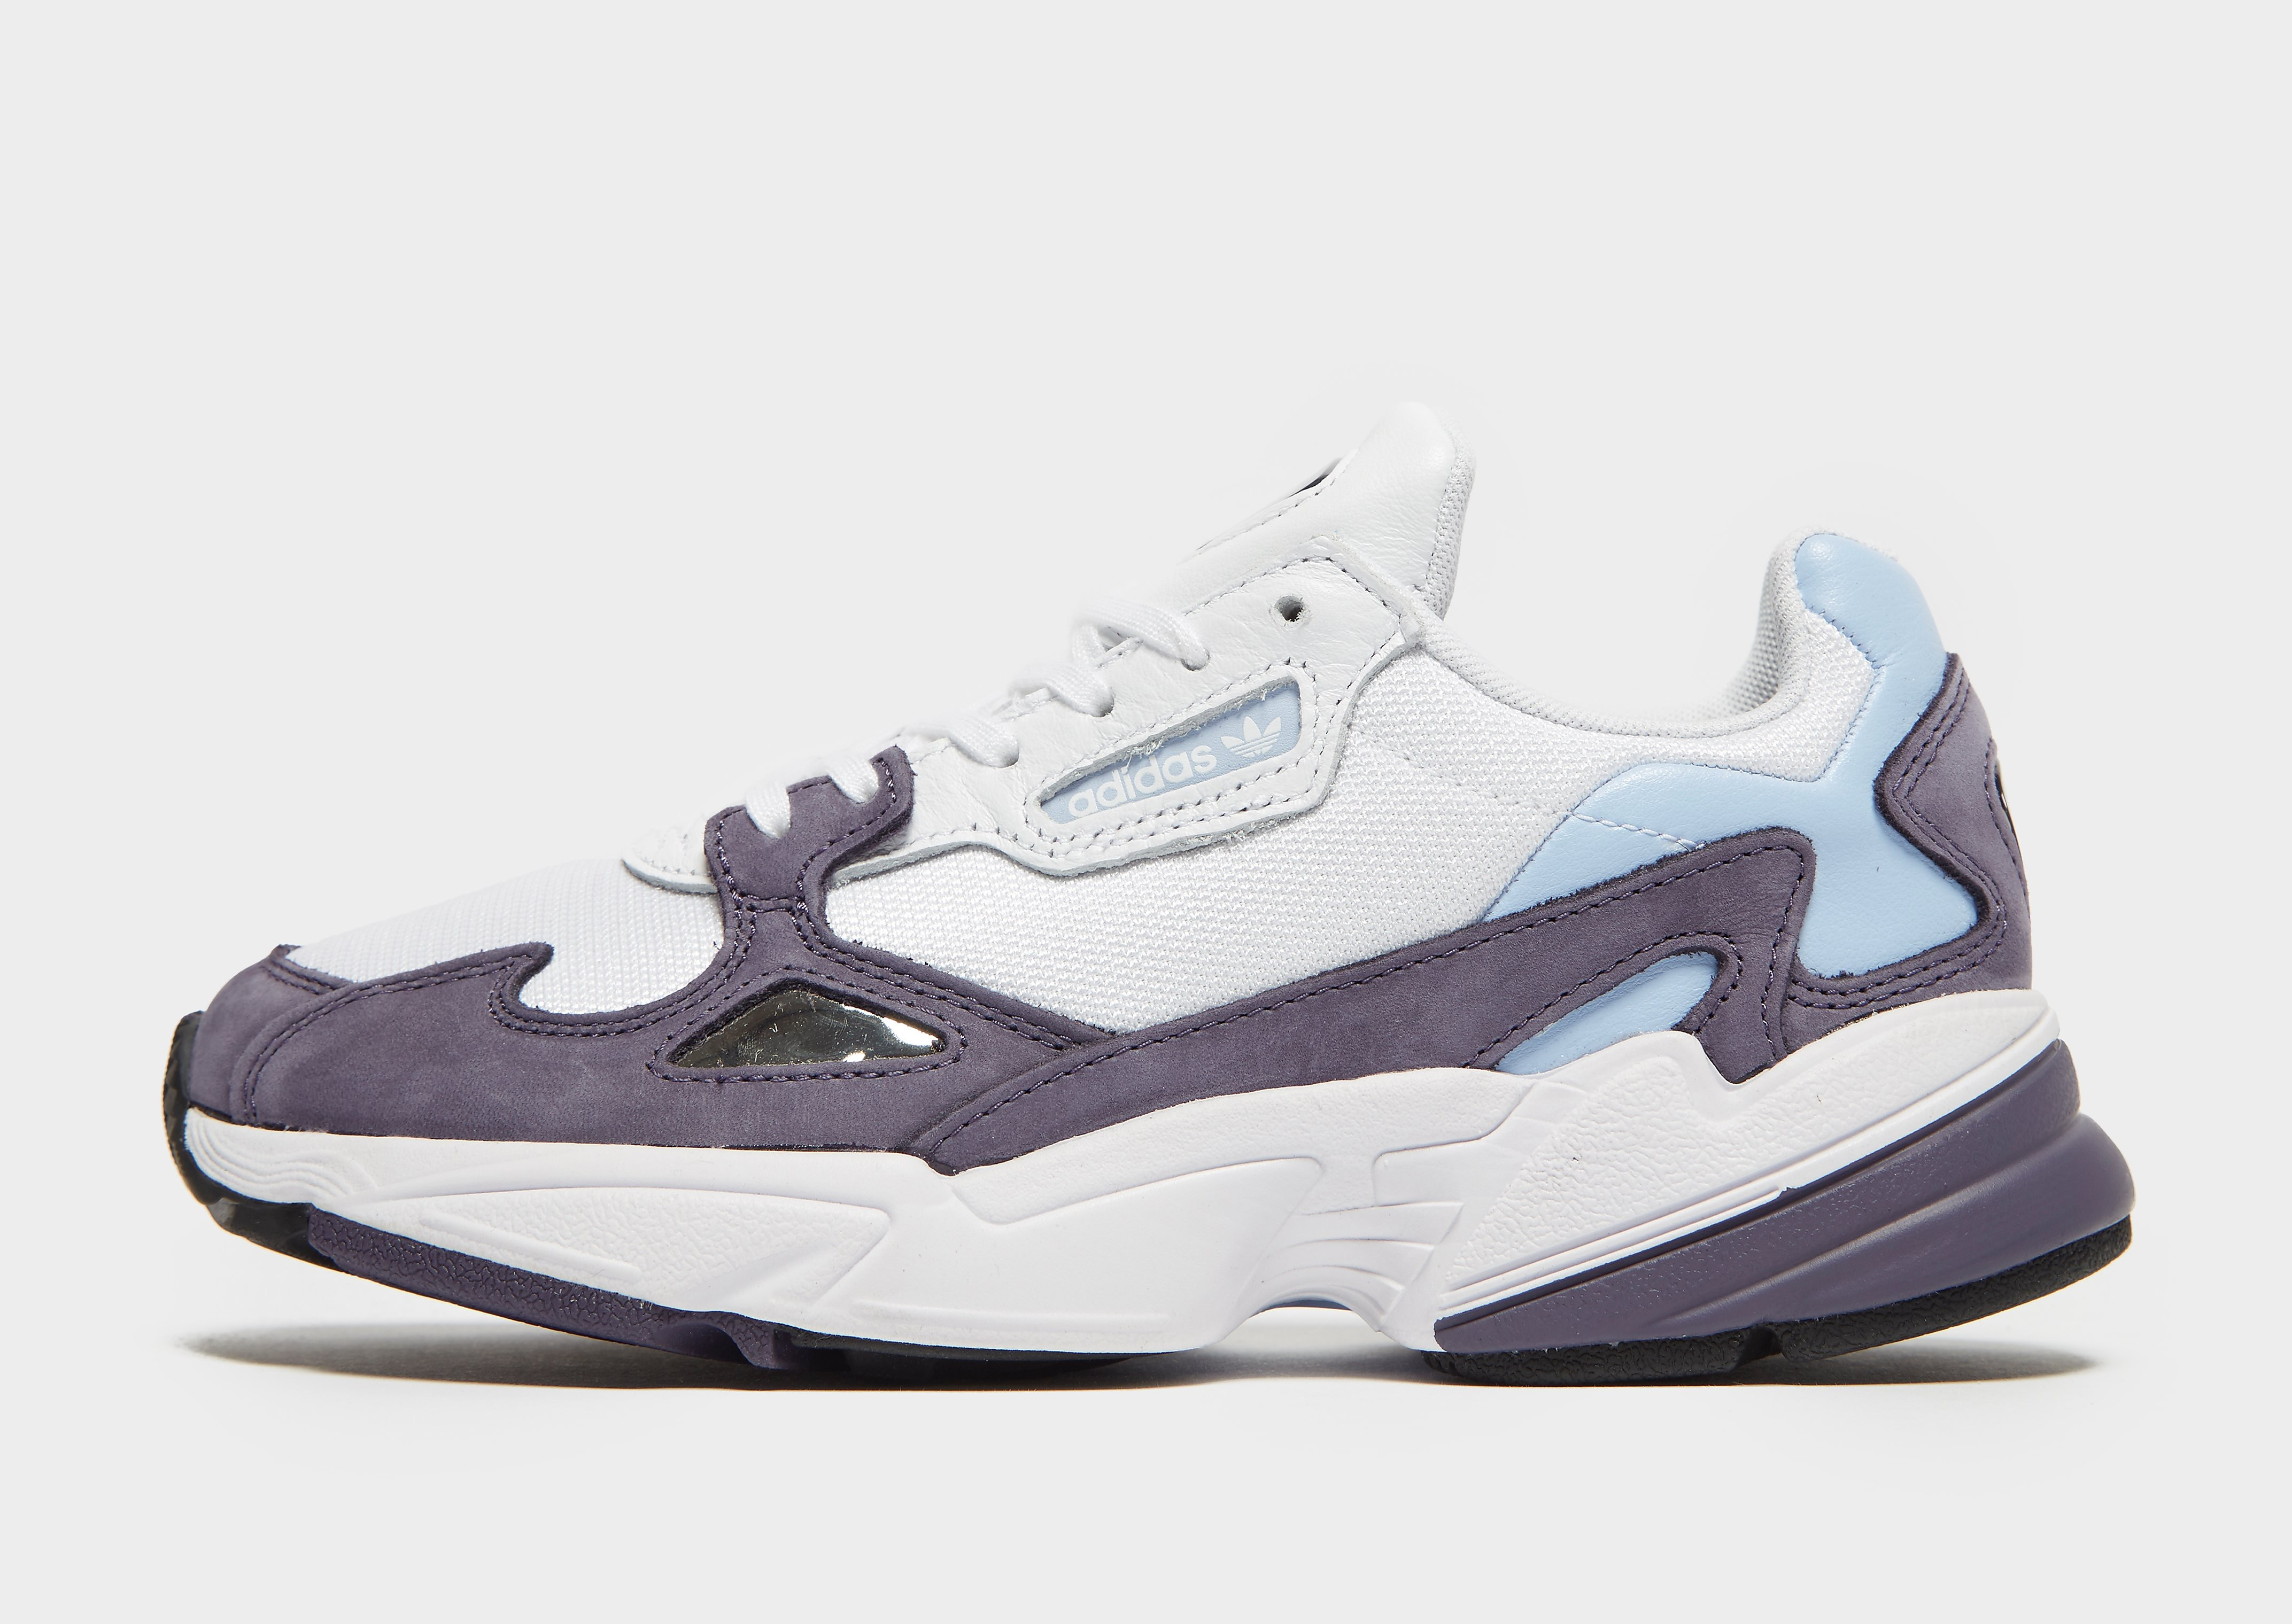 Sneaker Adidas adidas Originals Falcon Women's